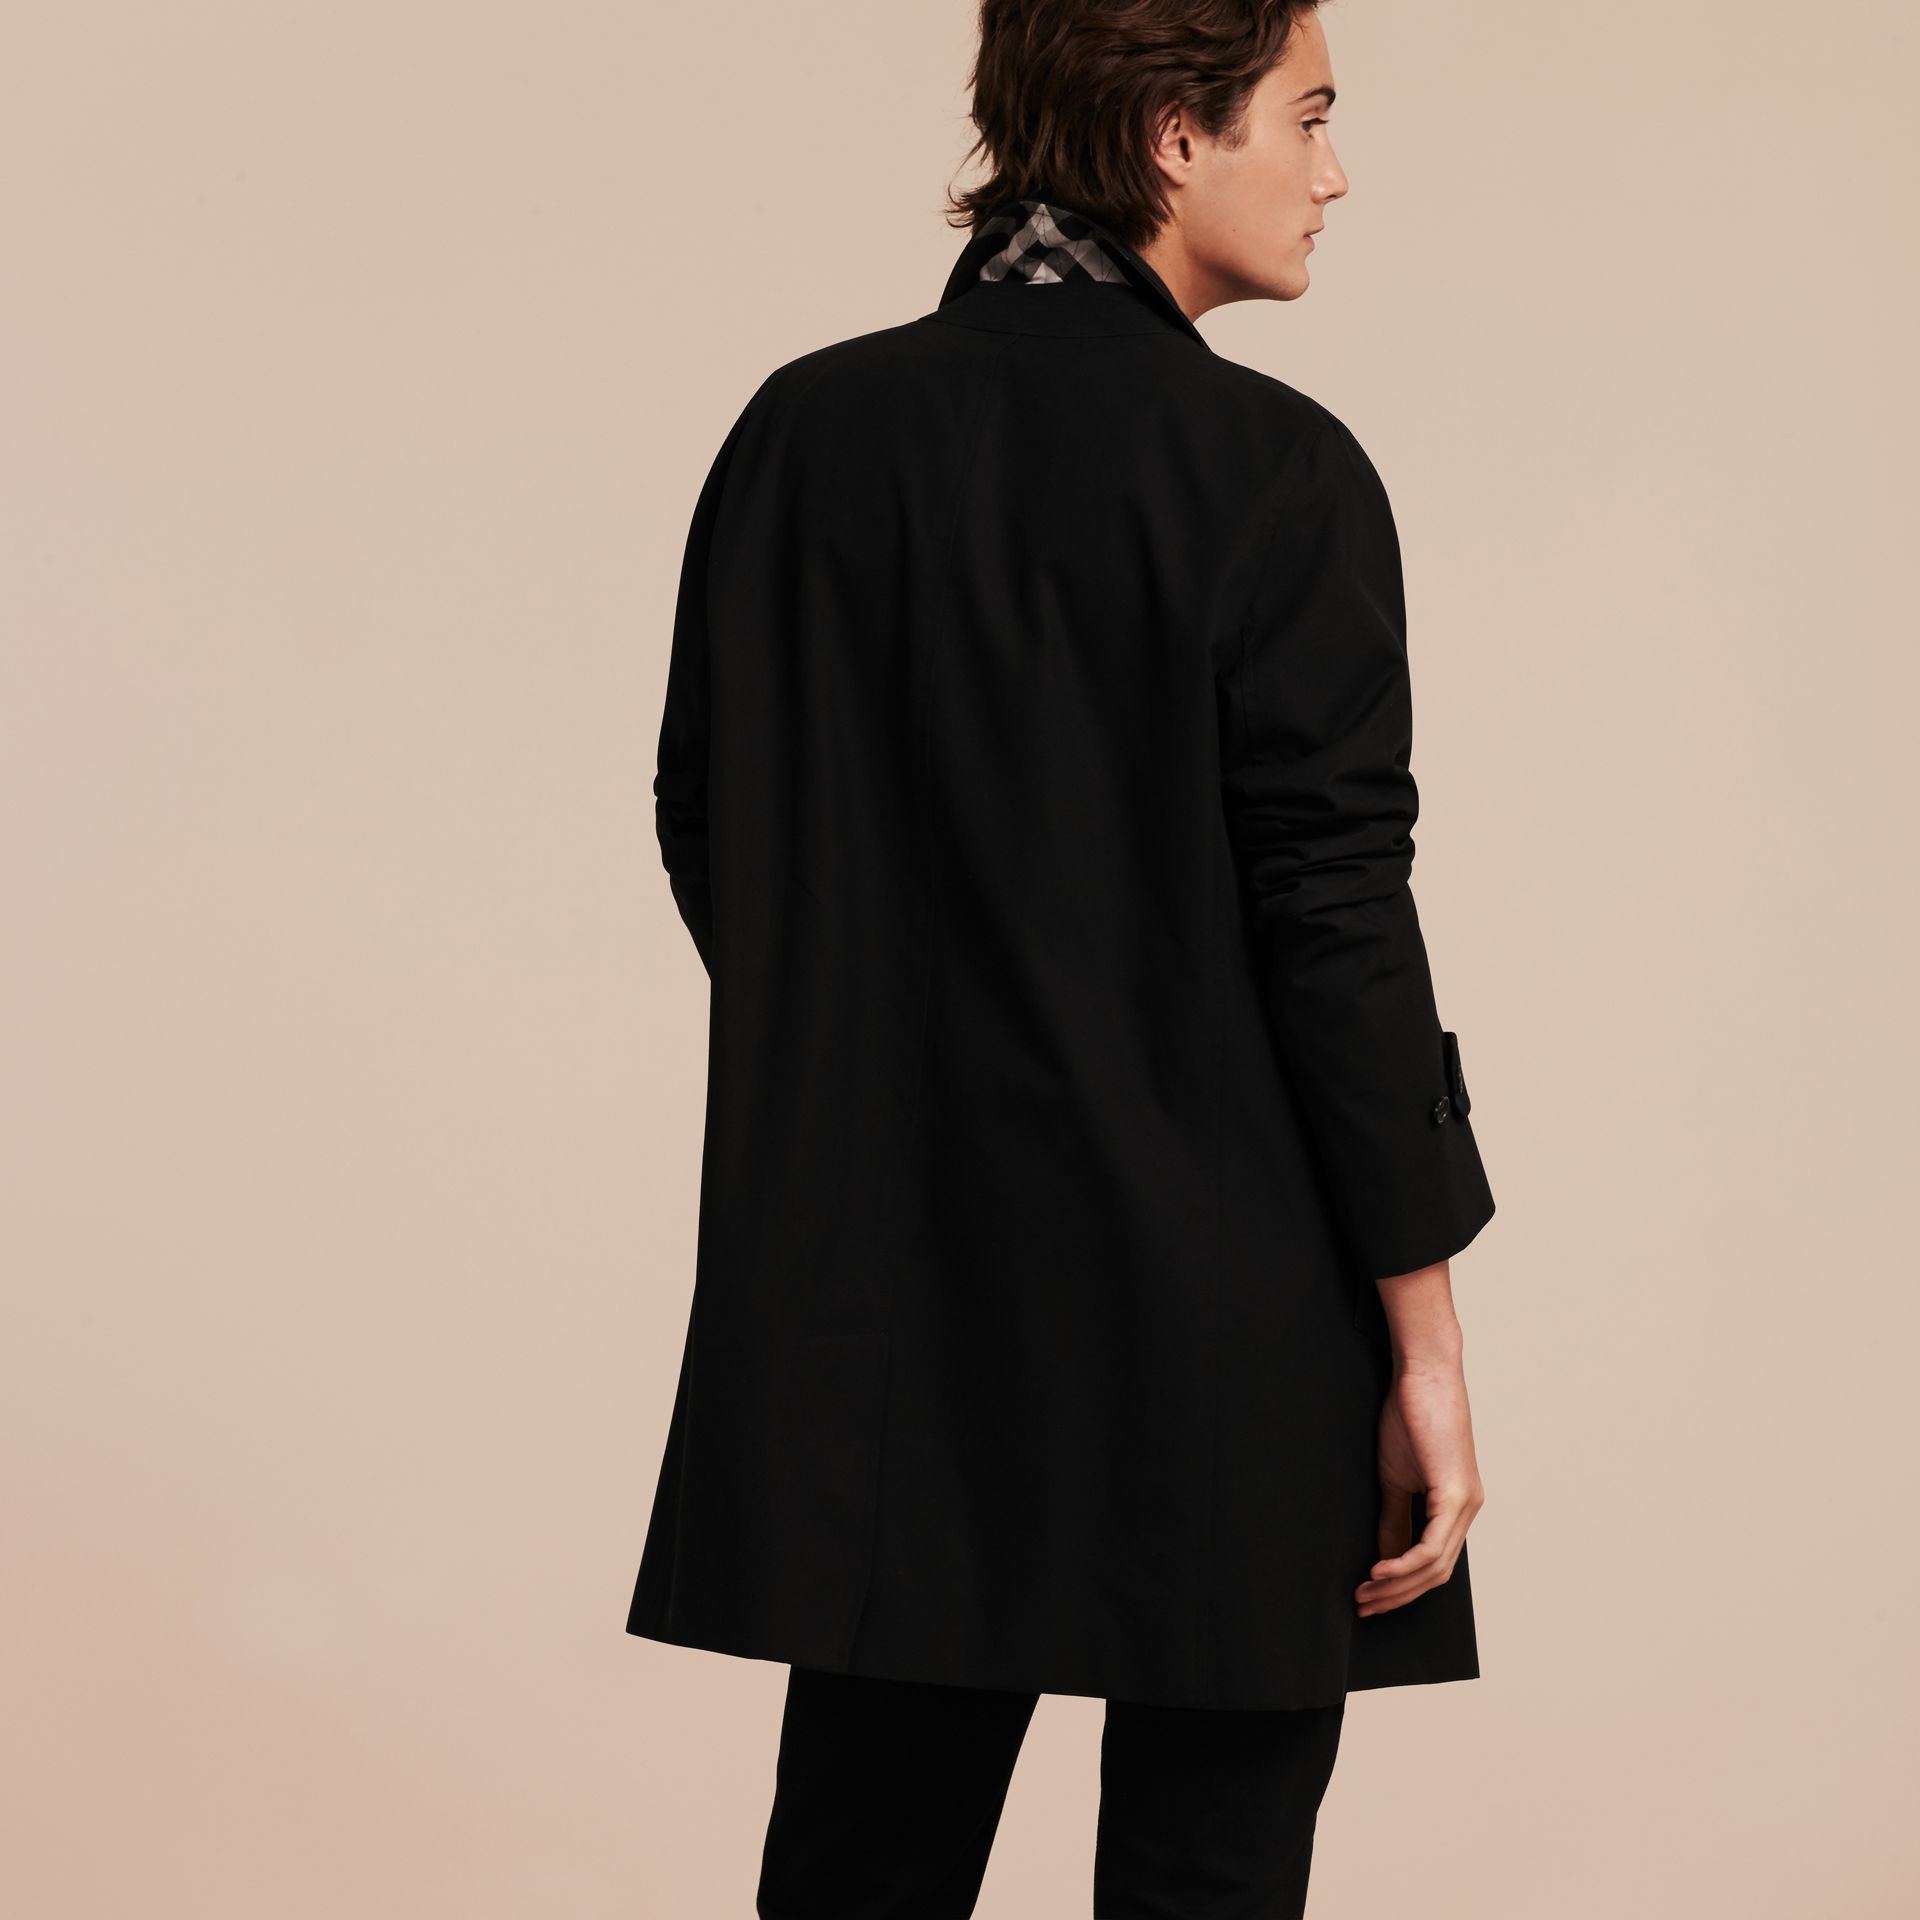 Cotton Gabardine Car Coat Black - gallery image 3